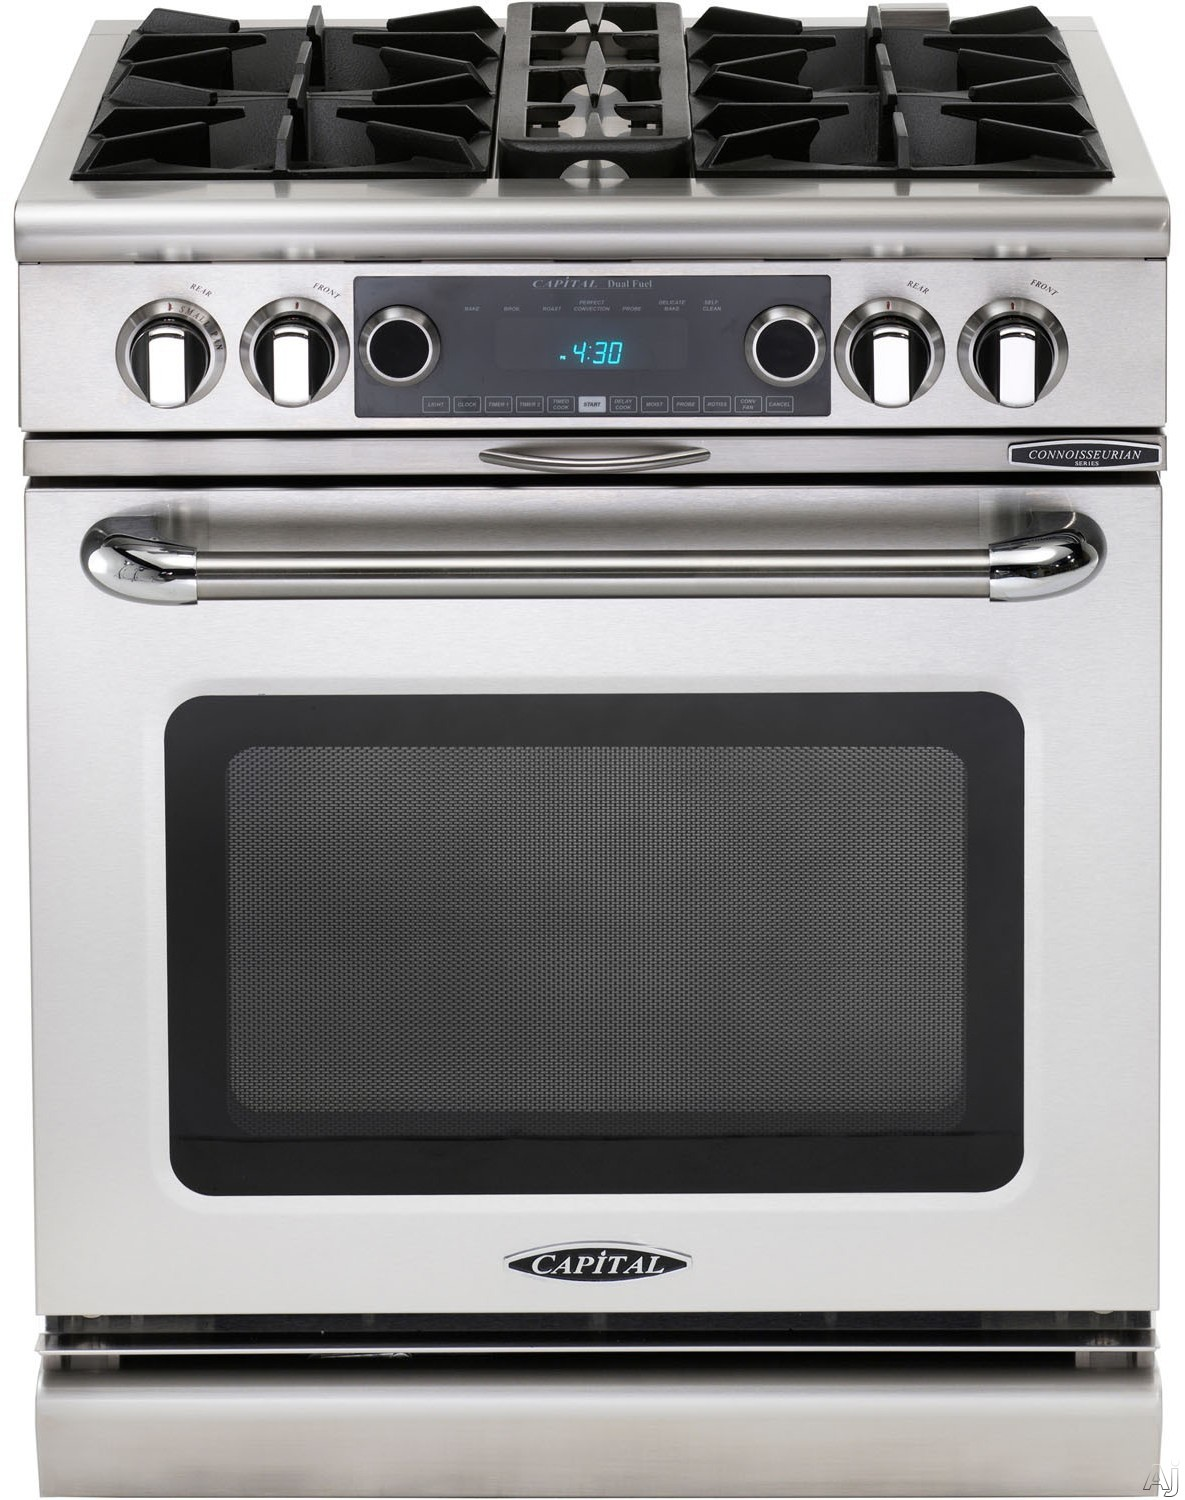 """Capital Connoisseurian Series COB304N 30 Inch Pro-Style Dual Fuel Range with 4 Open Burners, Removable Spill Pans, Dual Air-Flow Convection, Moto-Rotisâ""""¢ Rotisserie, Moist Bake Option, Flex-Rollâ""""¢ Oven Racks and 5.4 cu. ft. Oven: Stainless Steel, Natur"""